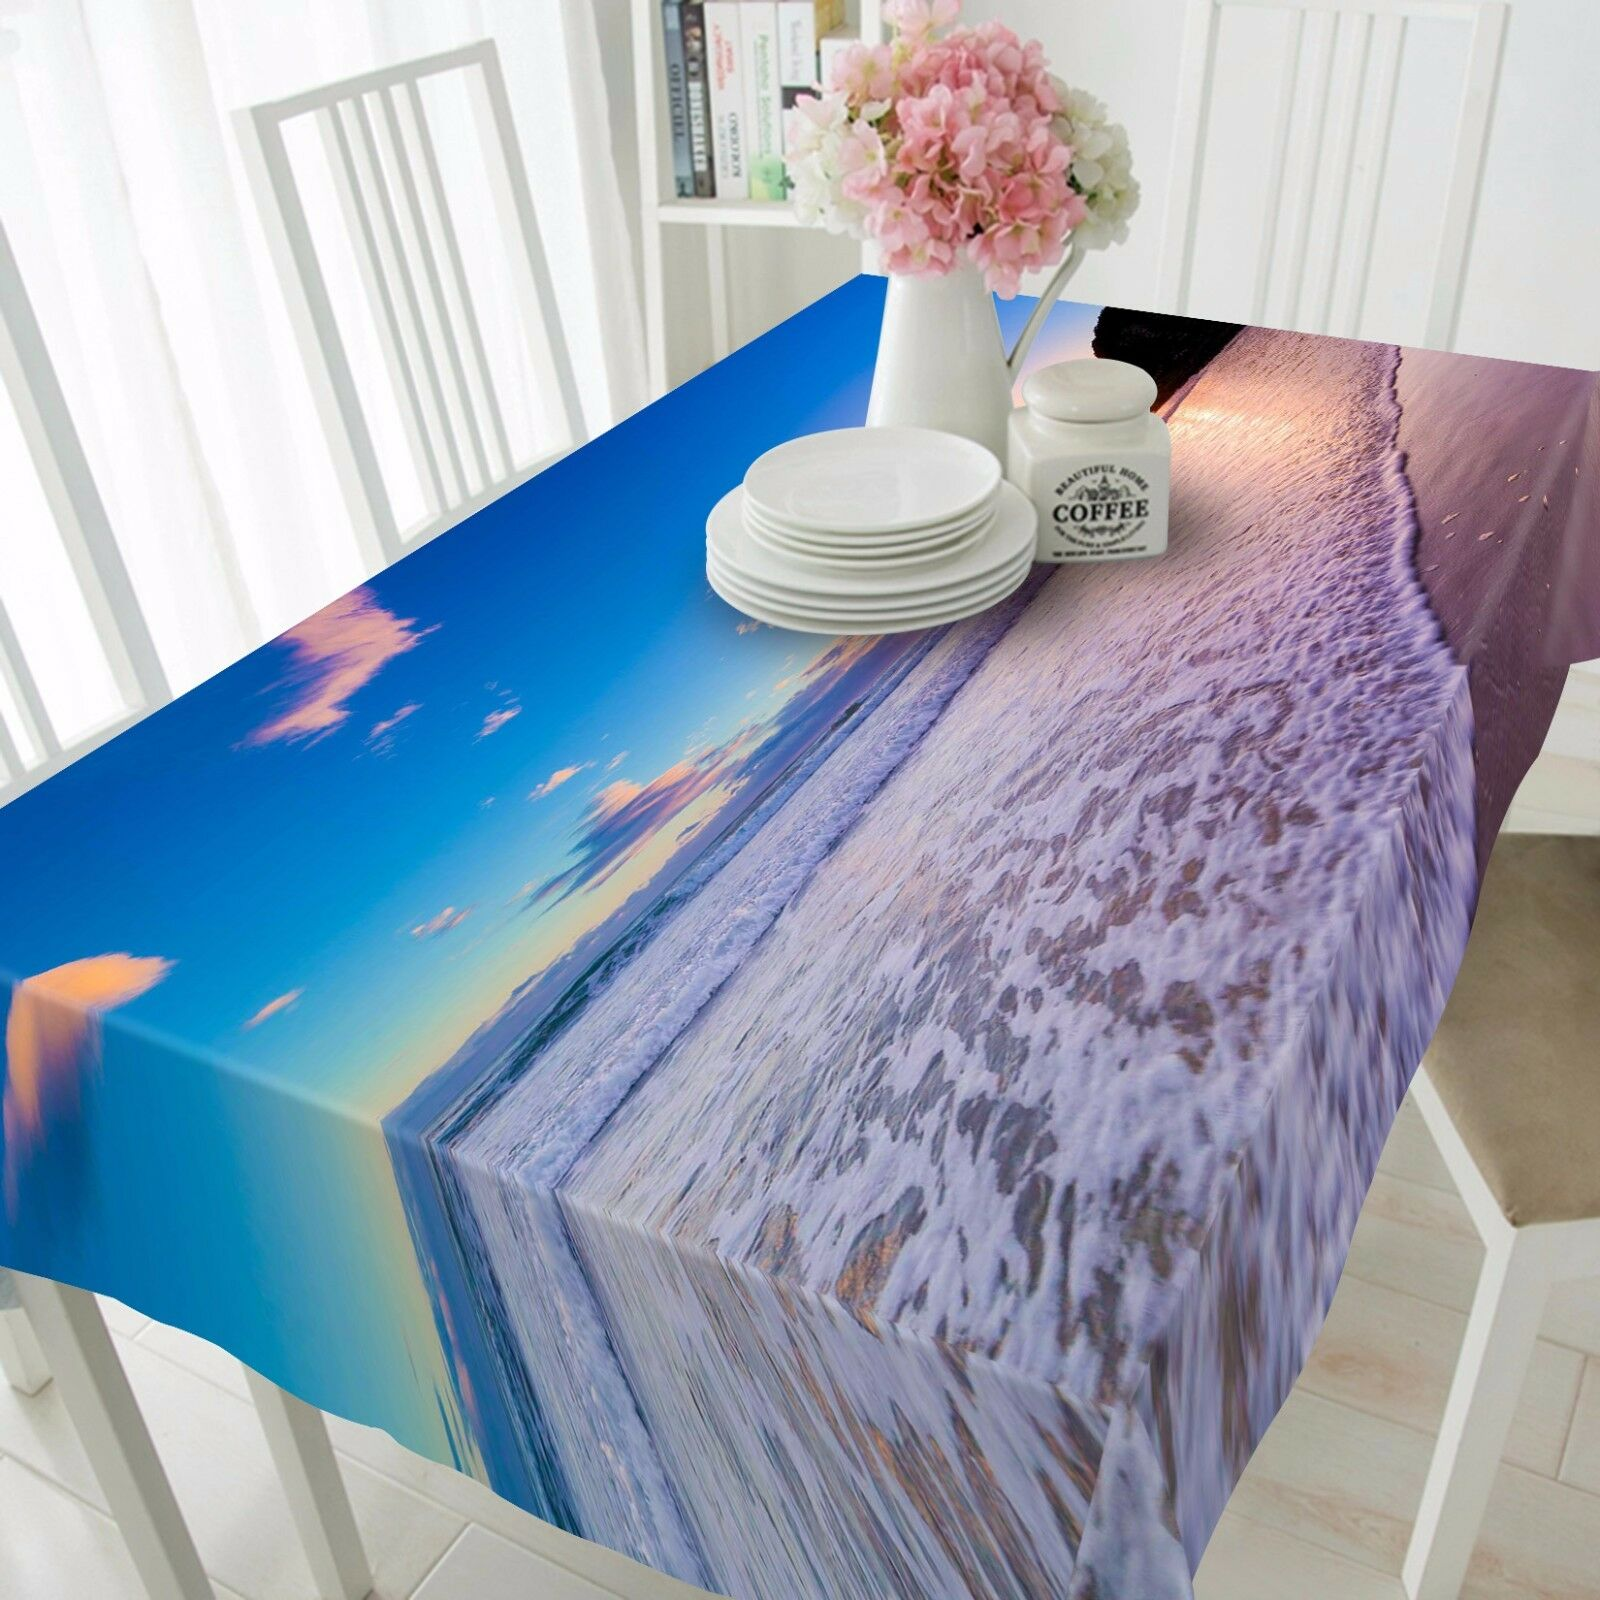 3D Wave sky828 Tablecloth Table Cover Cloth Birthday Party Event AJ WALLPAPER UK